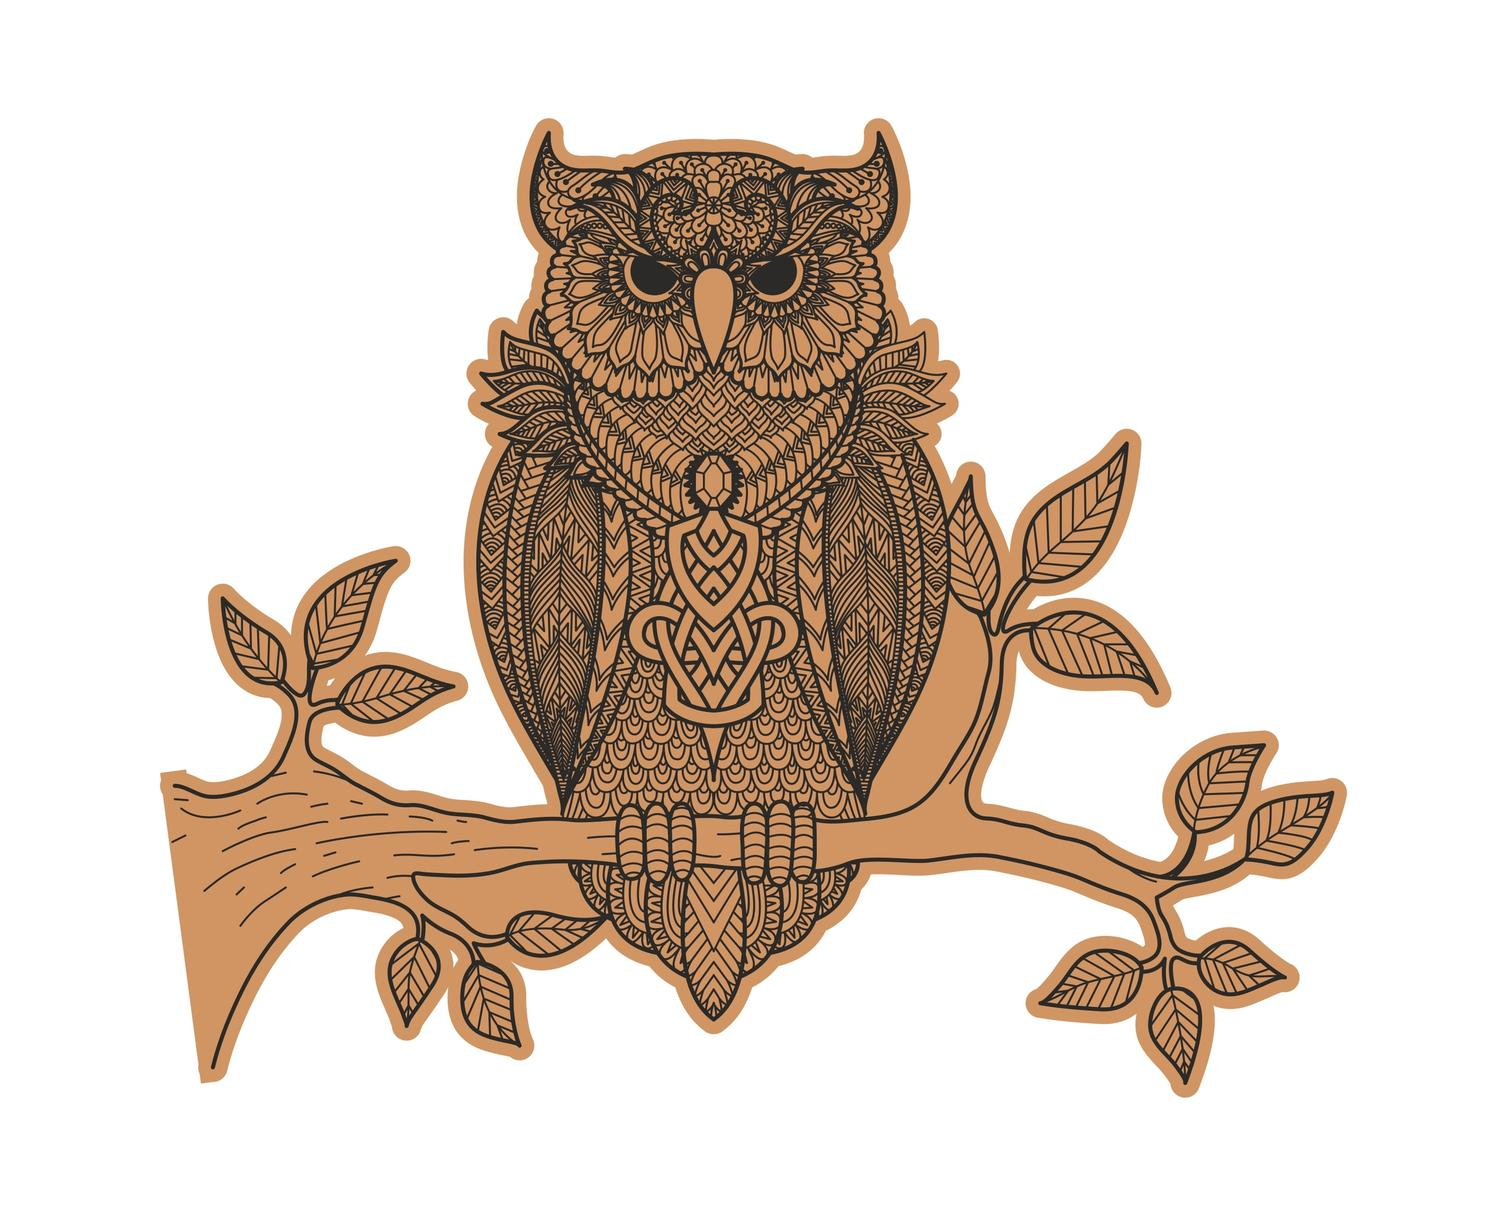 Decorative Owl Sitting On Branch Laser Cut Engraving Template Free Vector